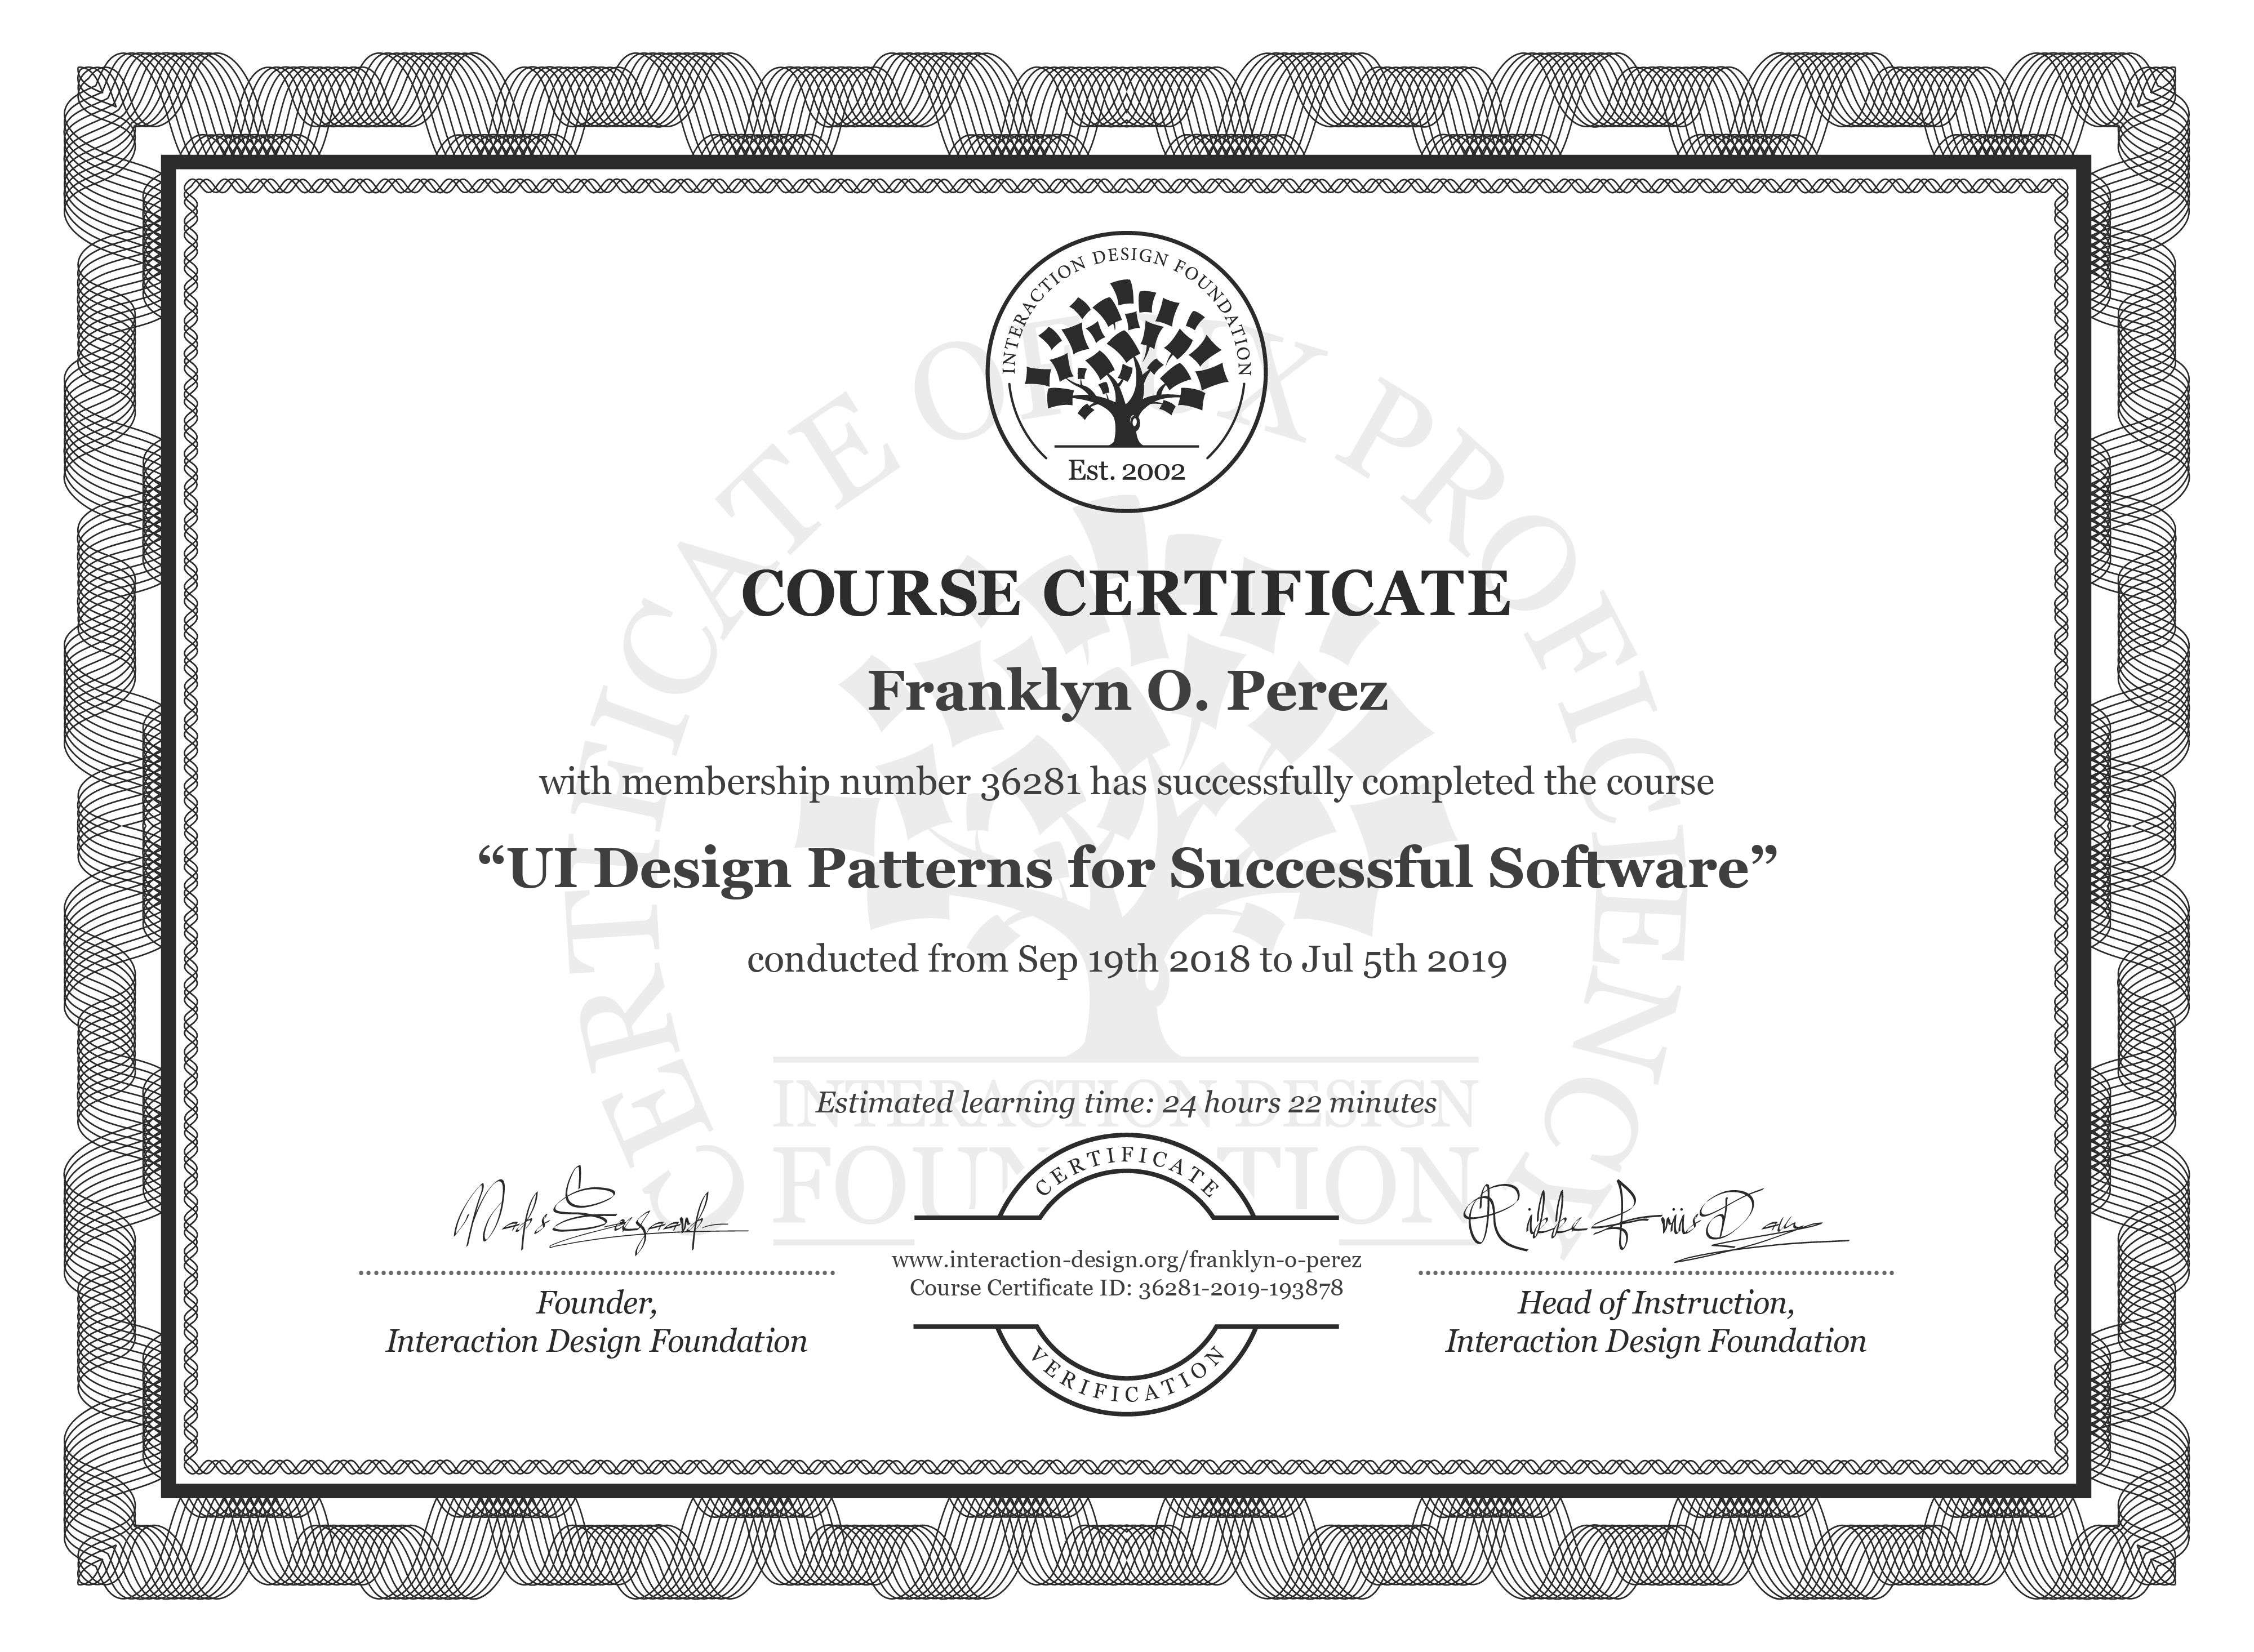 Franklyn O. Perez: Course Certificate - UI Design Patterns for Successful Software